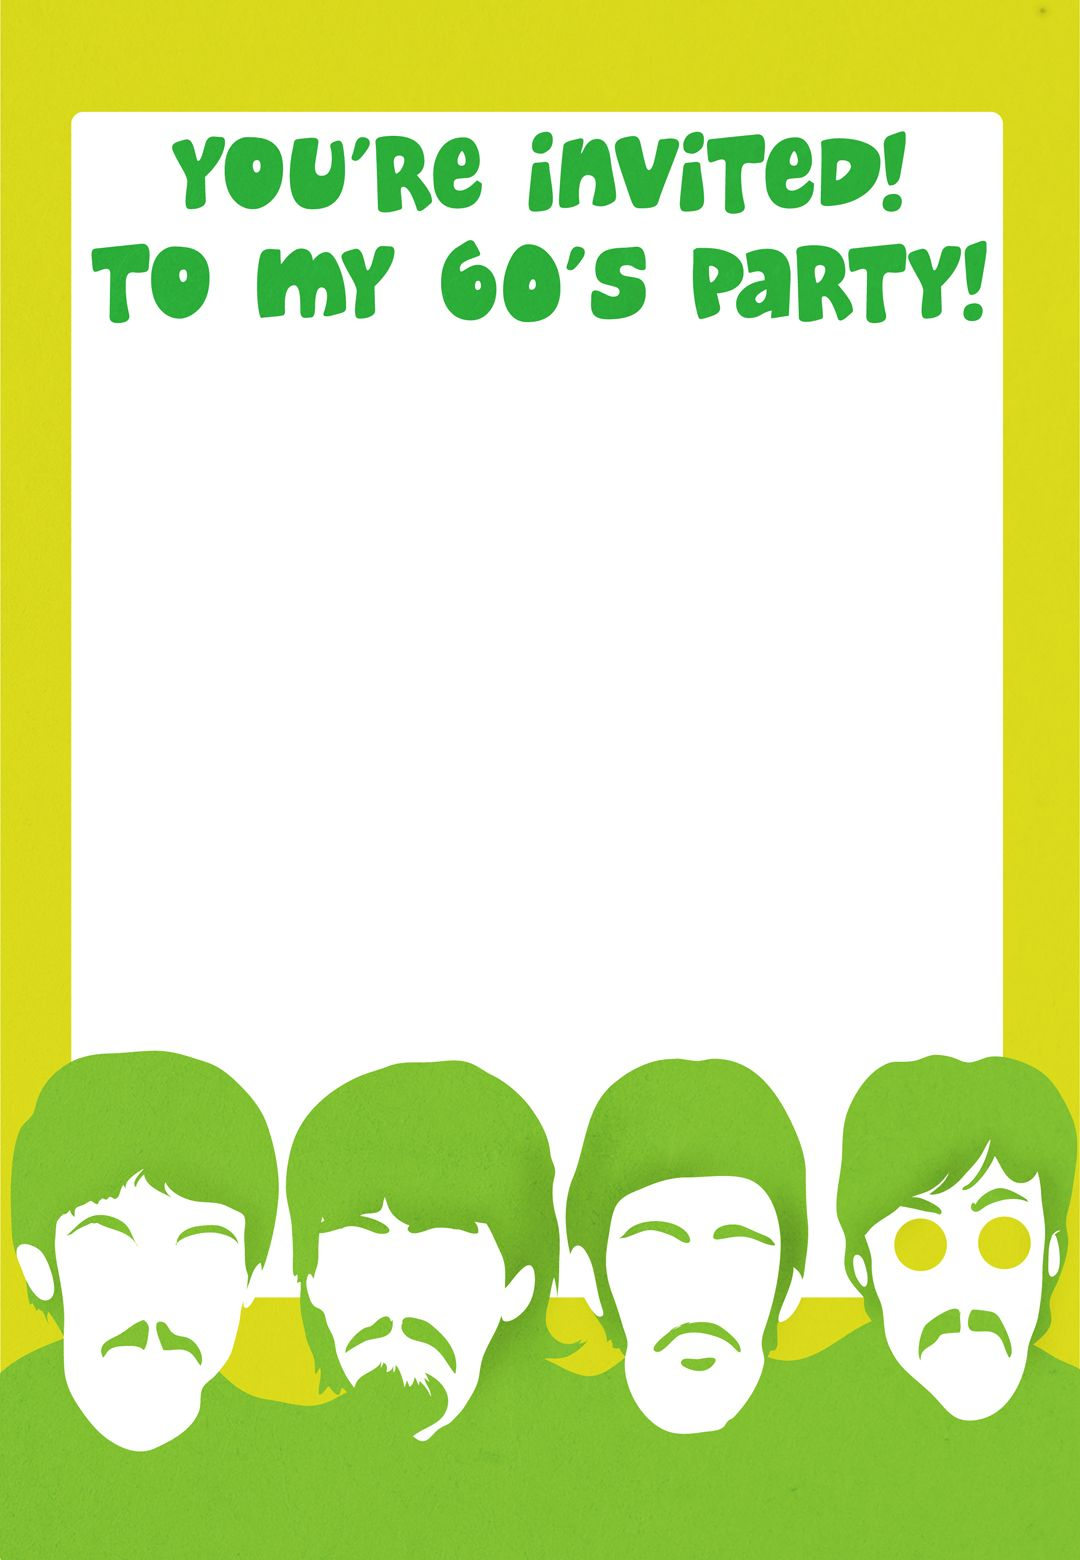 Free Printable 60S Party Invitation | 60s | Pinterest | 60s party ...